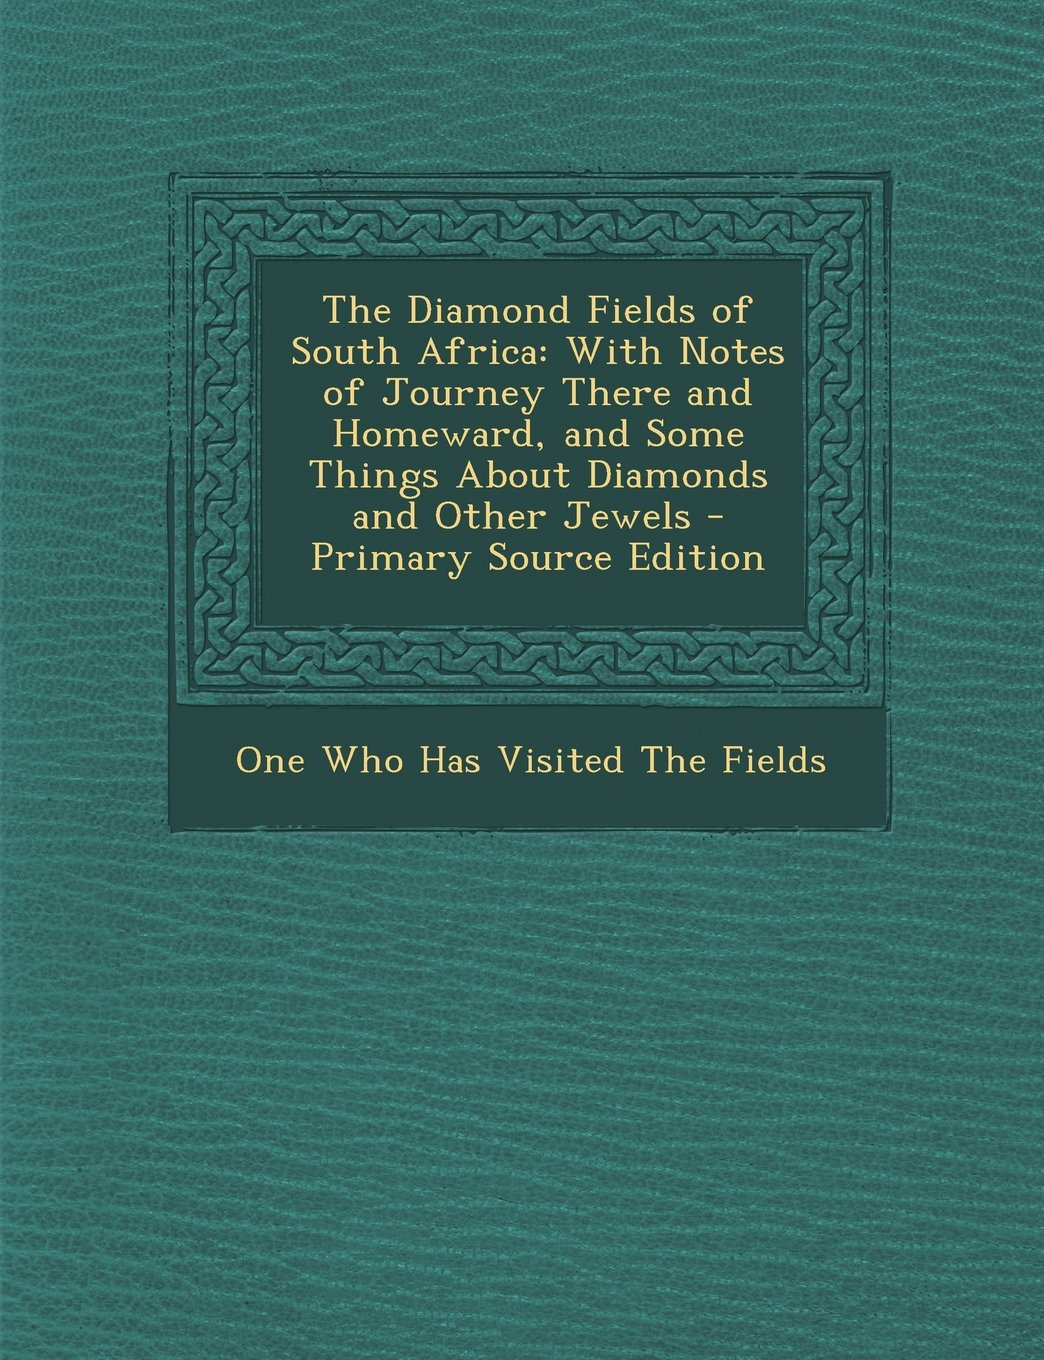 Download The Diamond Fields of South Africa: With Notes of Journey There and Homeward, and Some Things About Diamonds and Other Jewels pdf